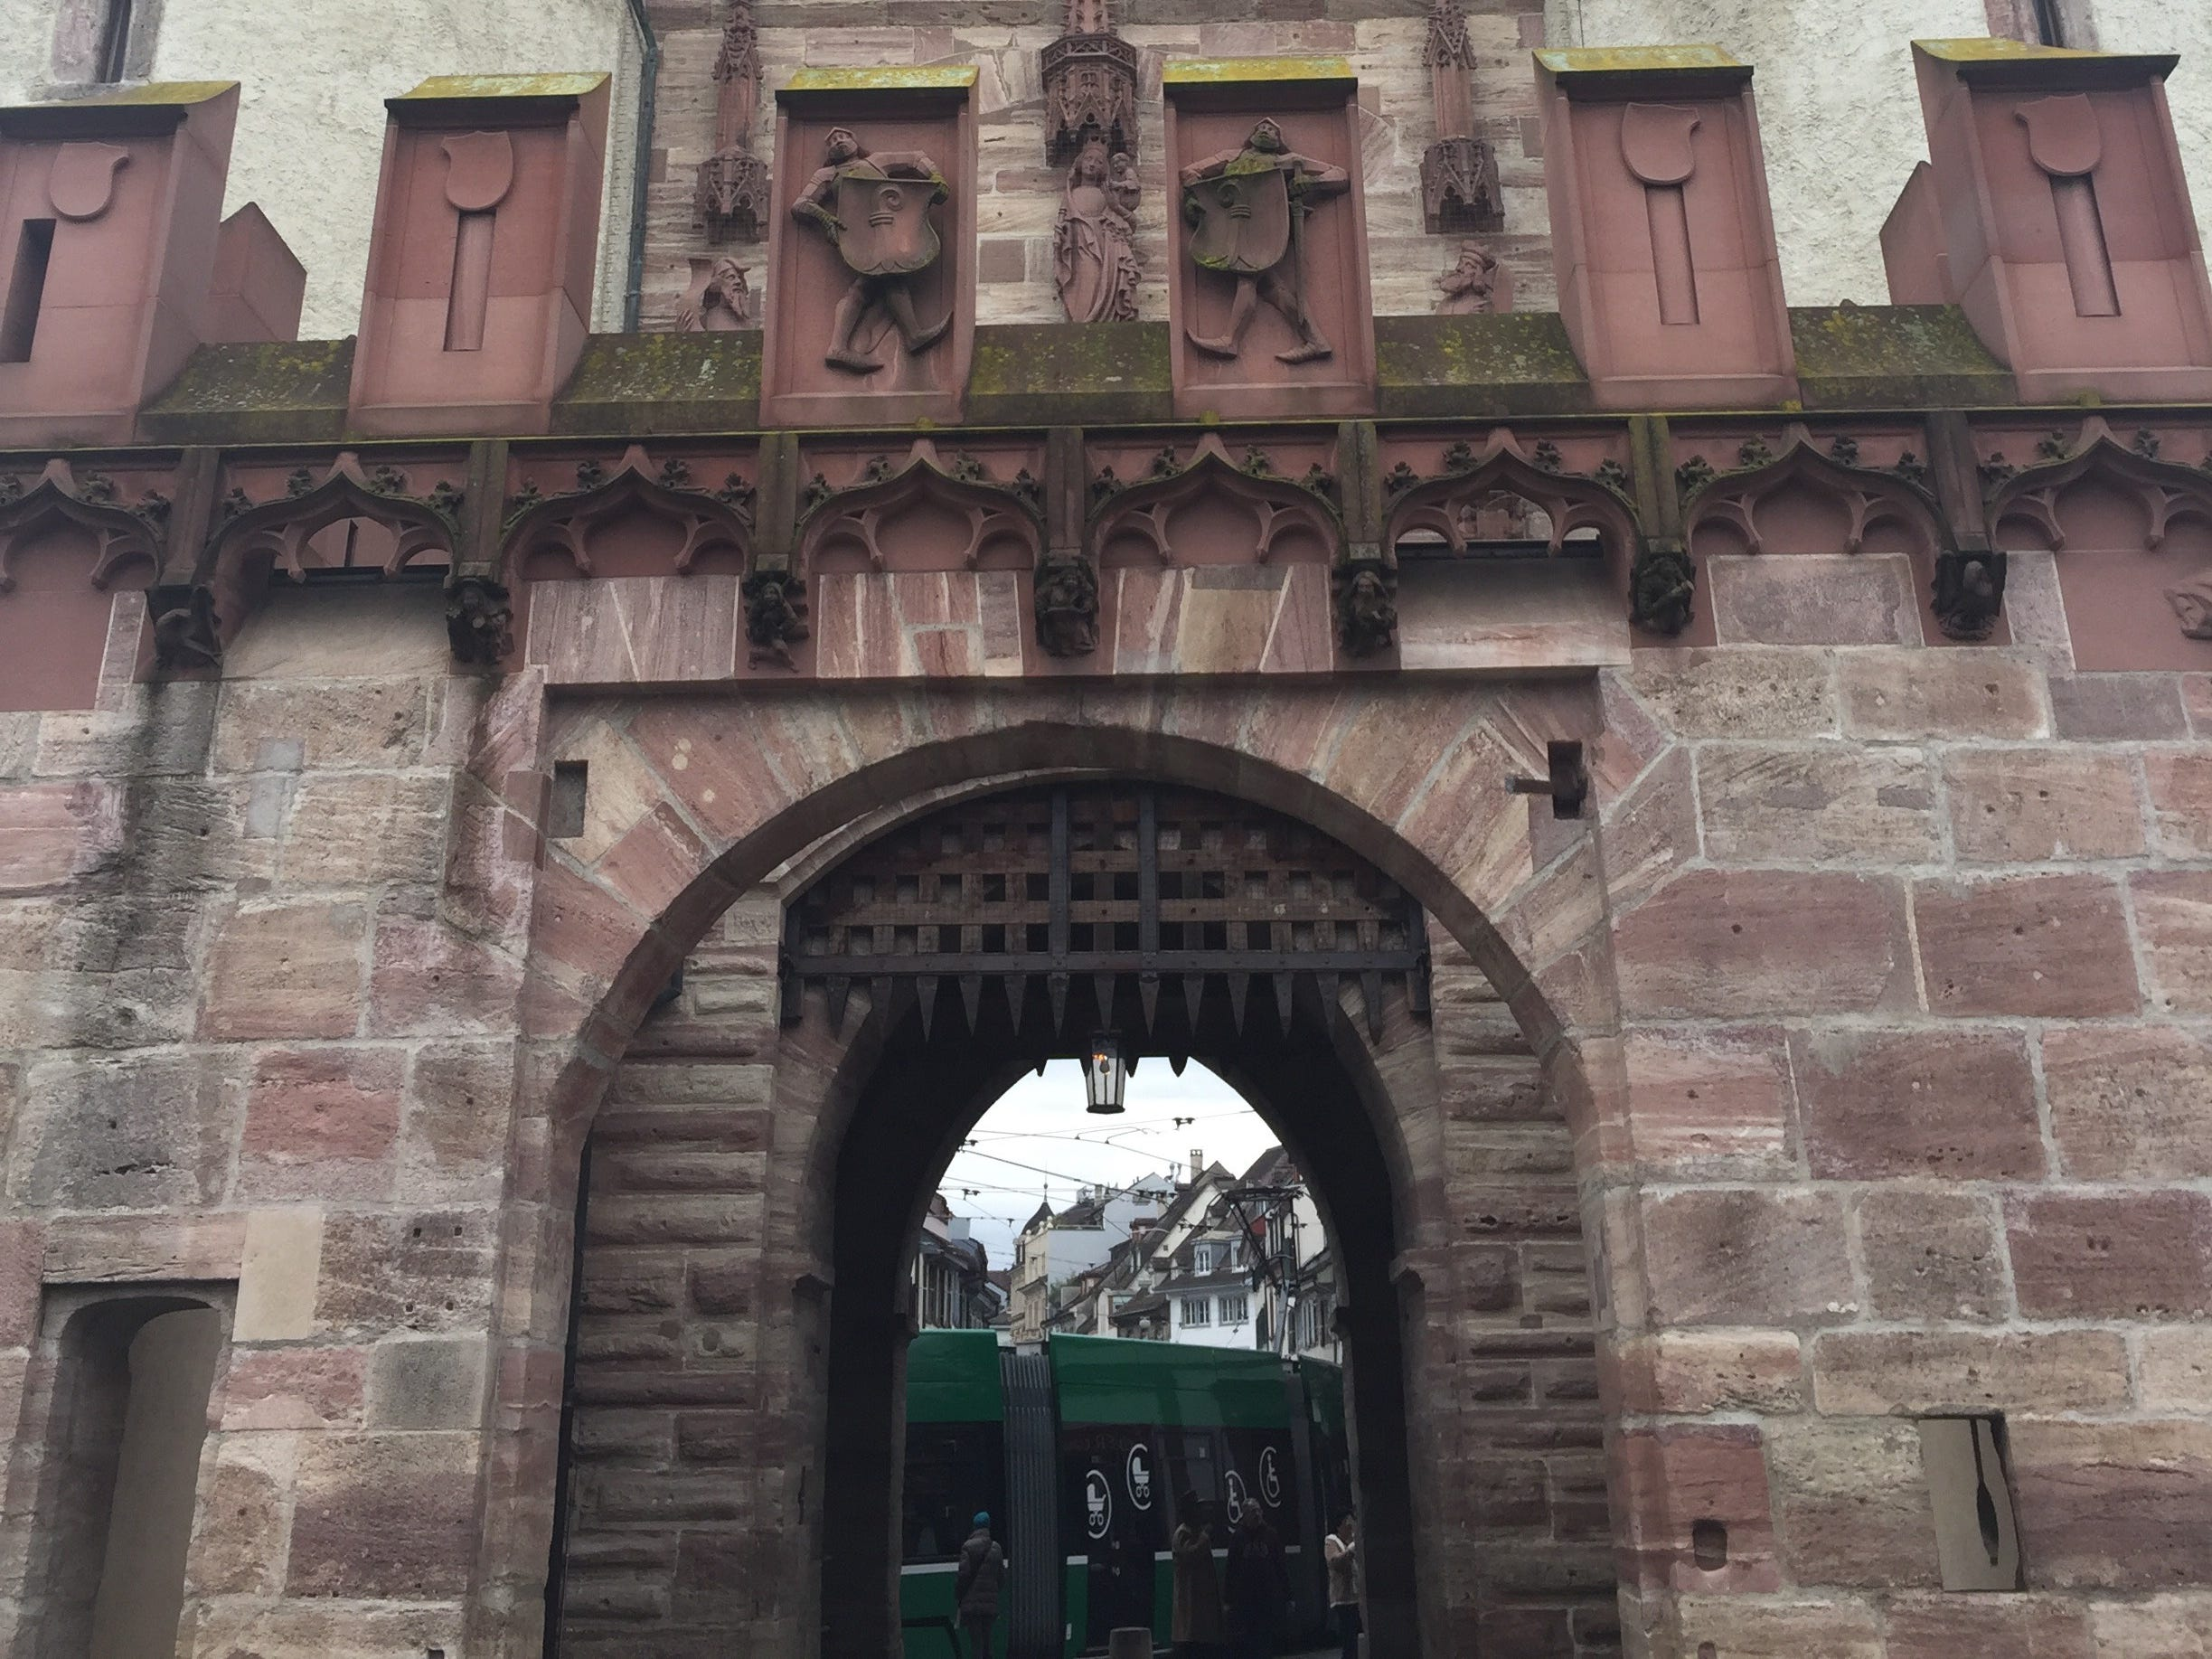 The 600-year-old Spalentor is a fortified city gate that used to serve as a merchandise supply route into the city.